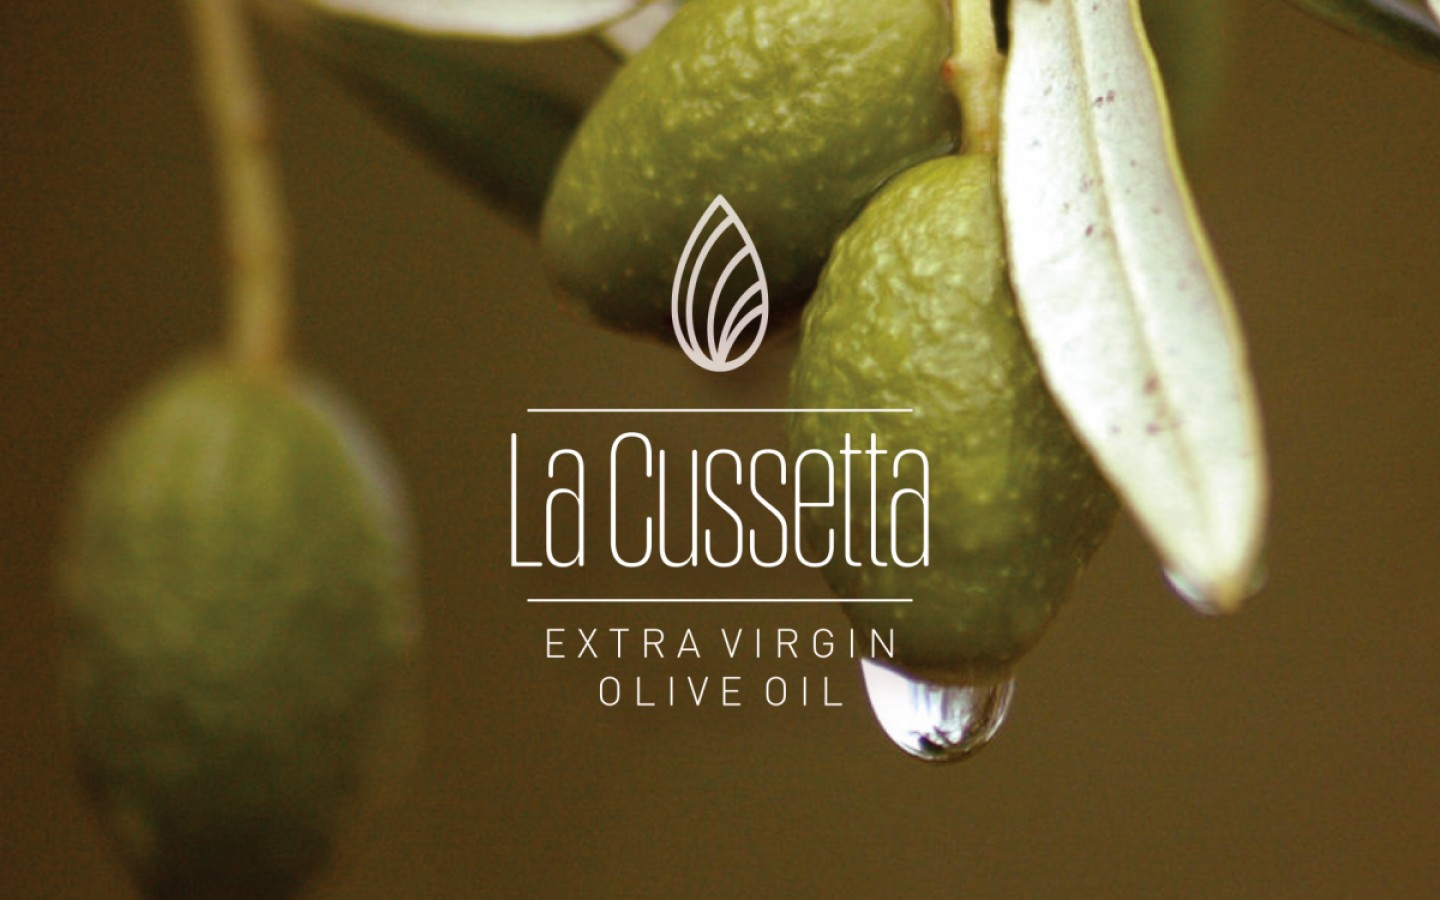 PACKAGING - LA CUSSETTA